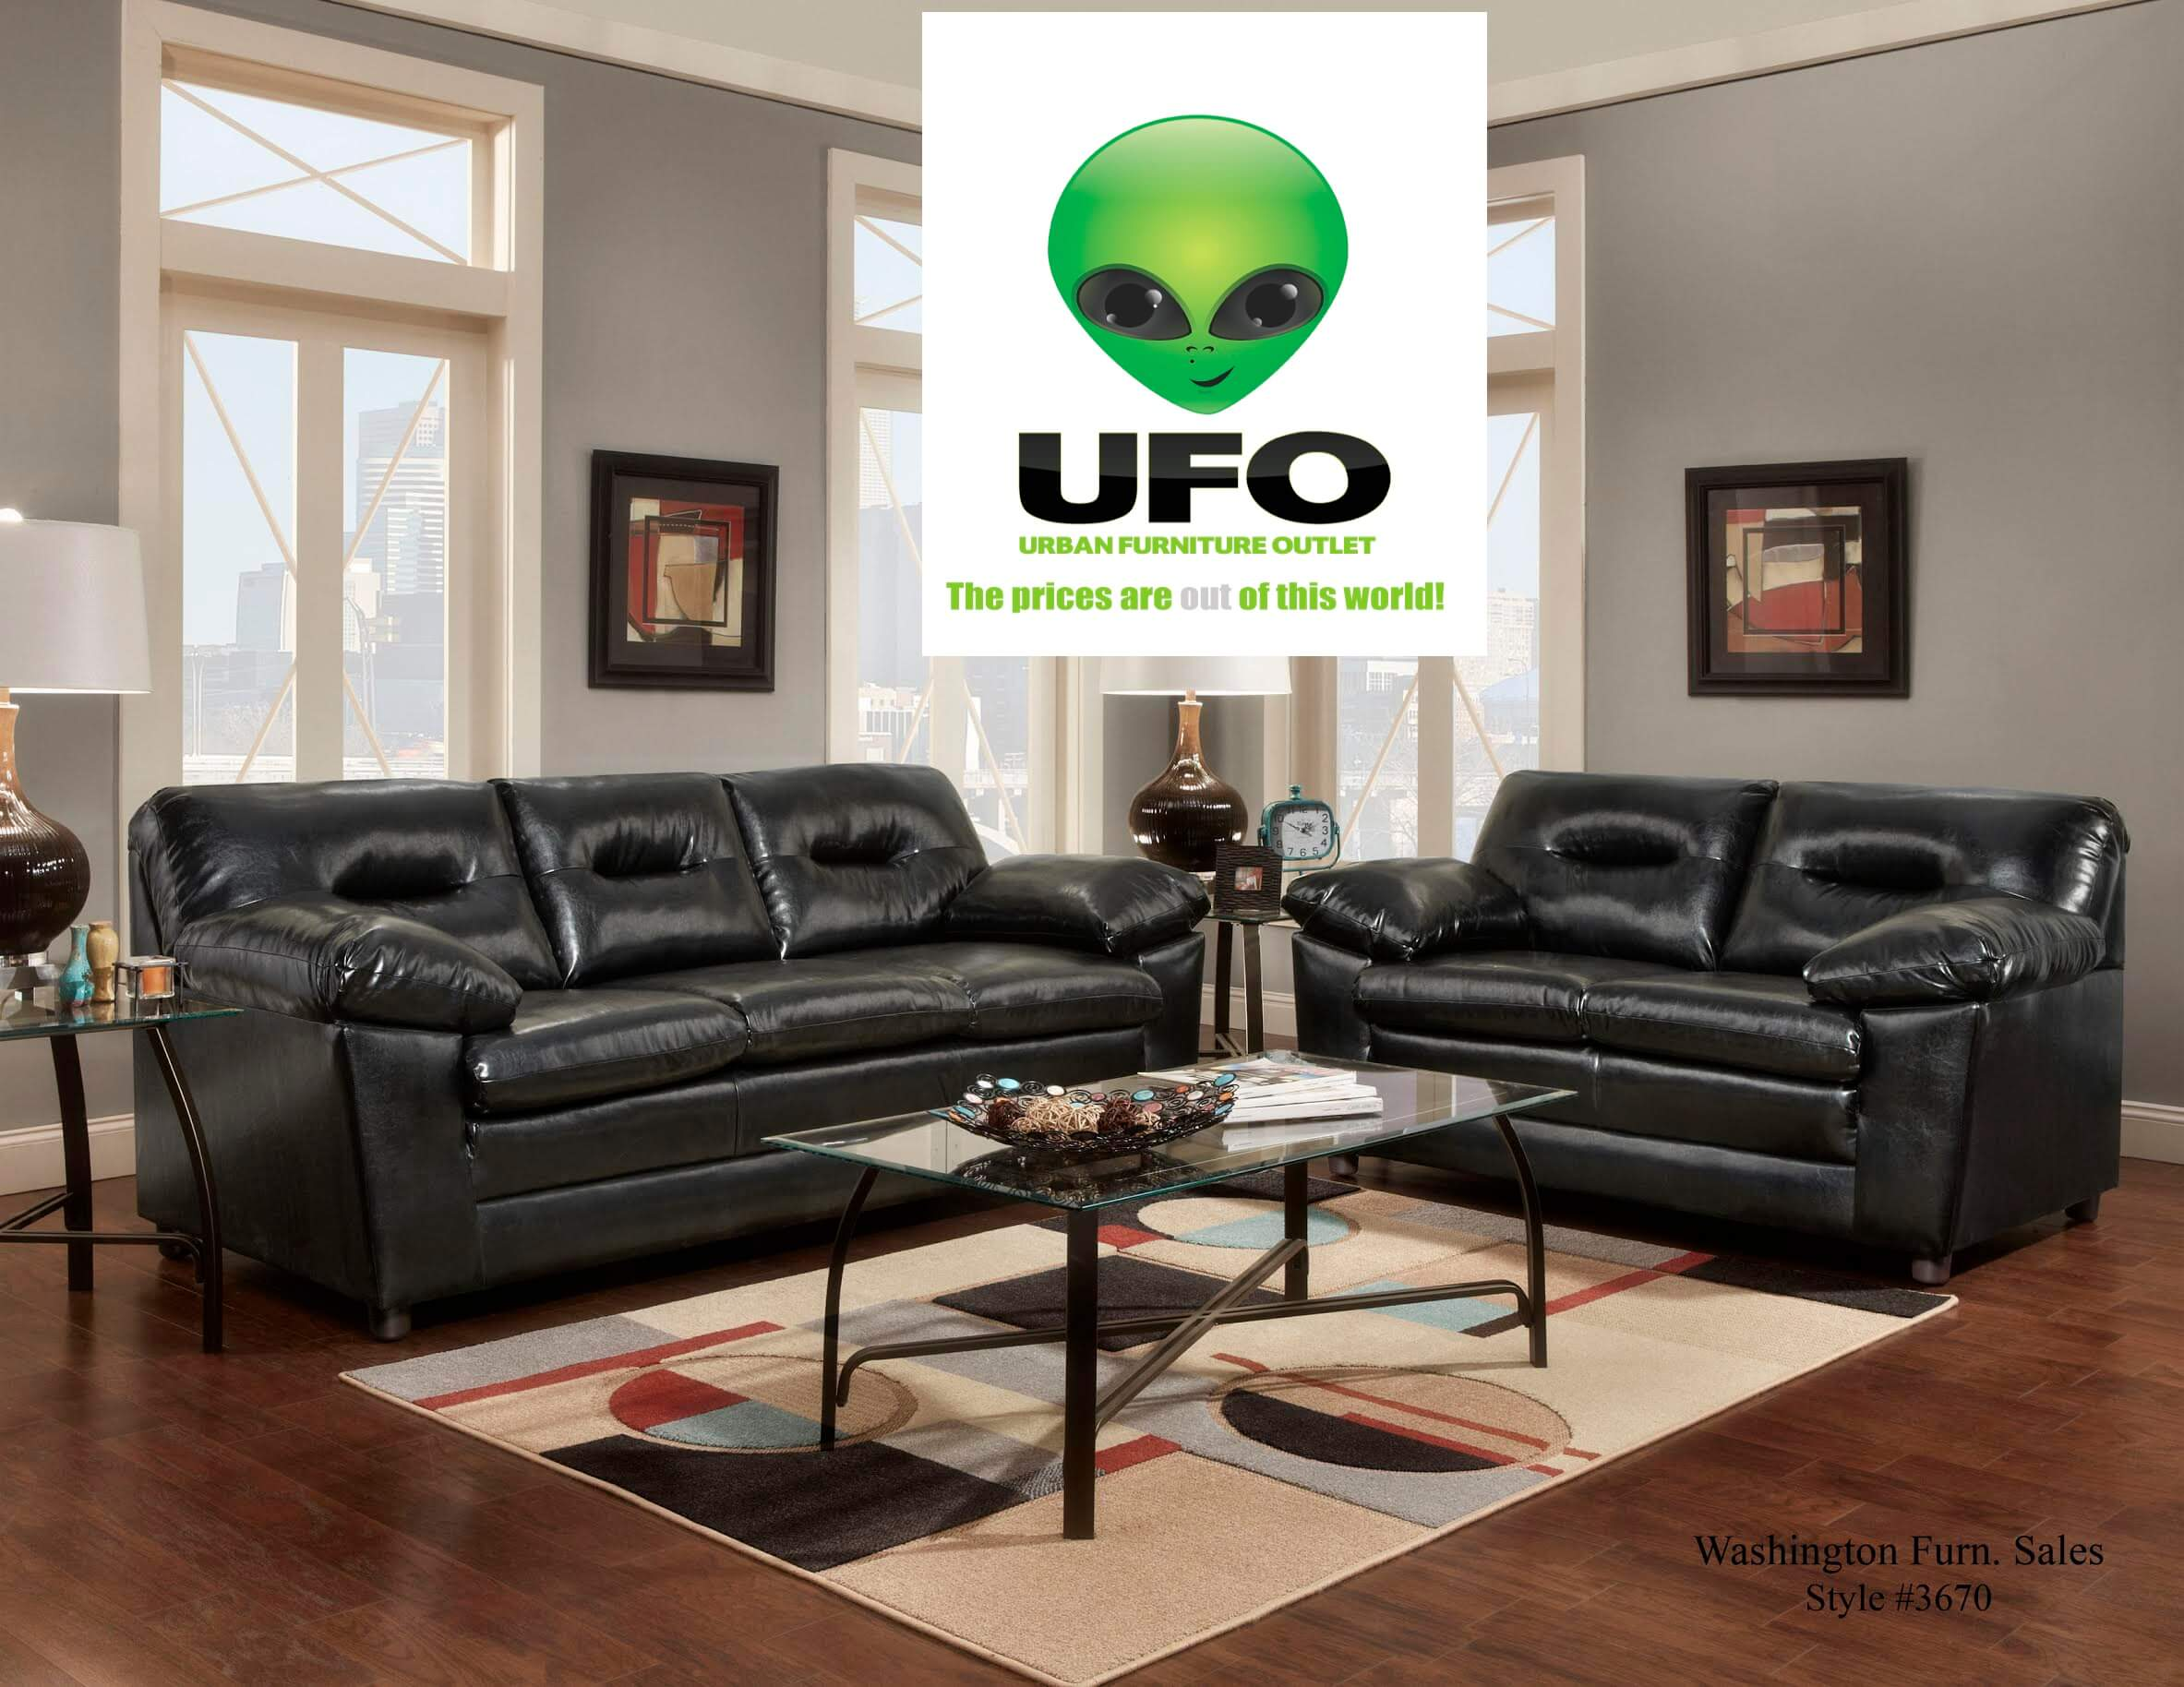 Magnificent 3670 Denver Black Sofa And Loveseat With Free Coffee And End Tables Disconitnued Ibusinesslaw Wood Chair Design Ideas Ibusinesslaworg